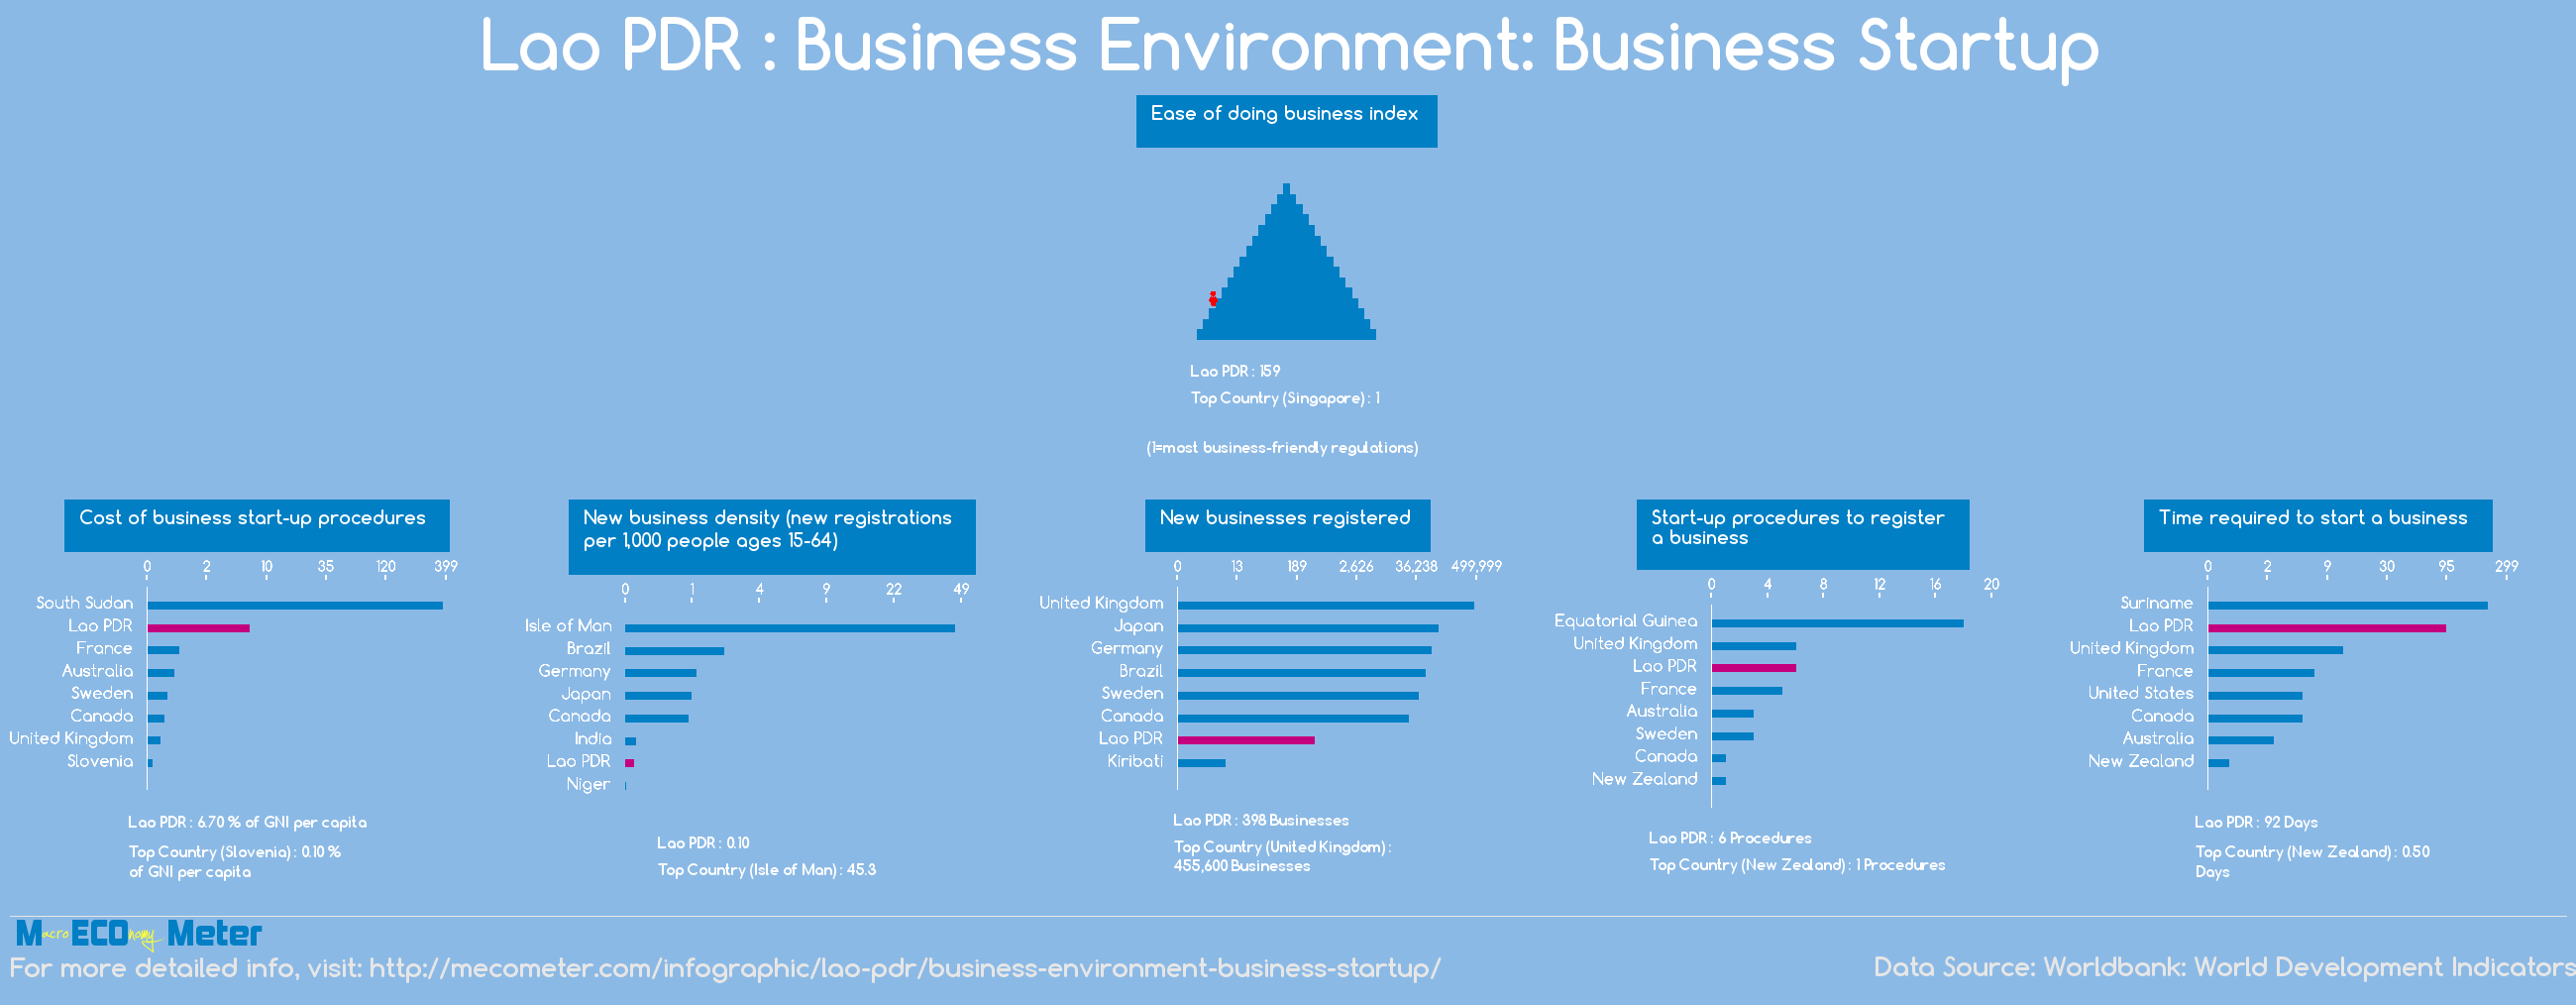 Lao PDR : Business Environment: Business Startup